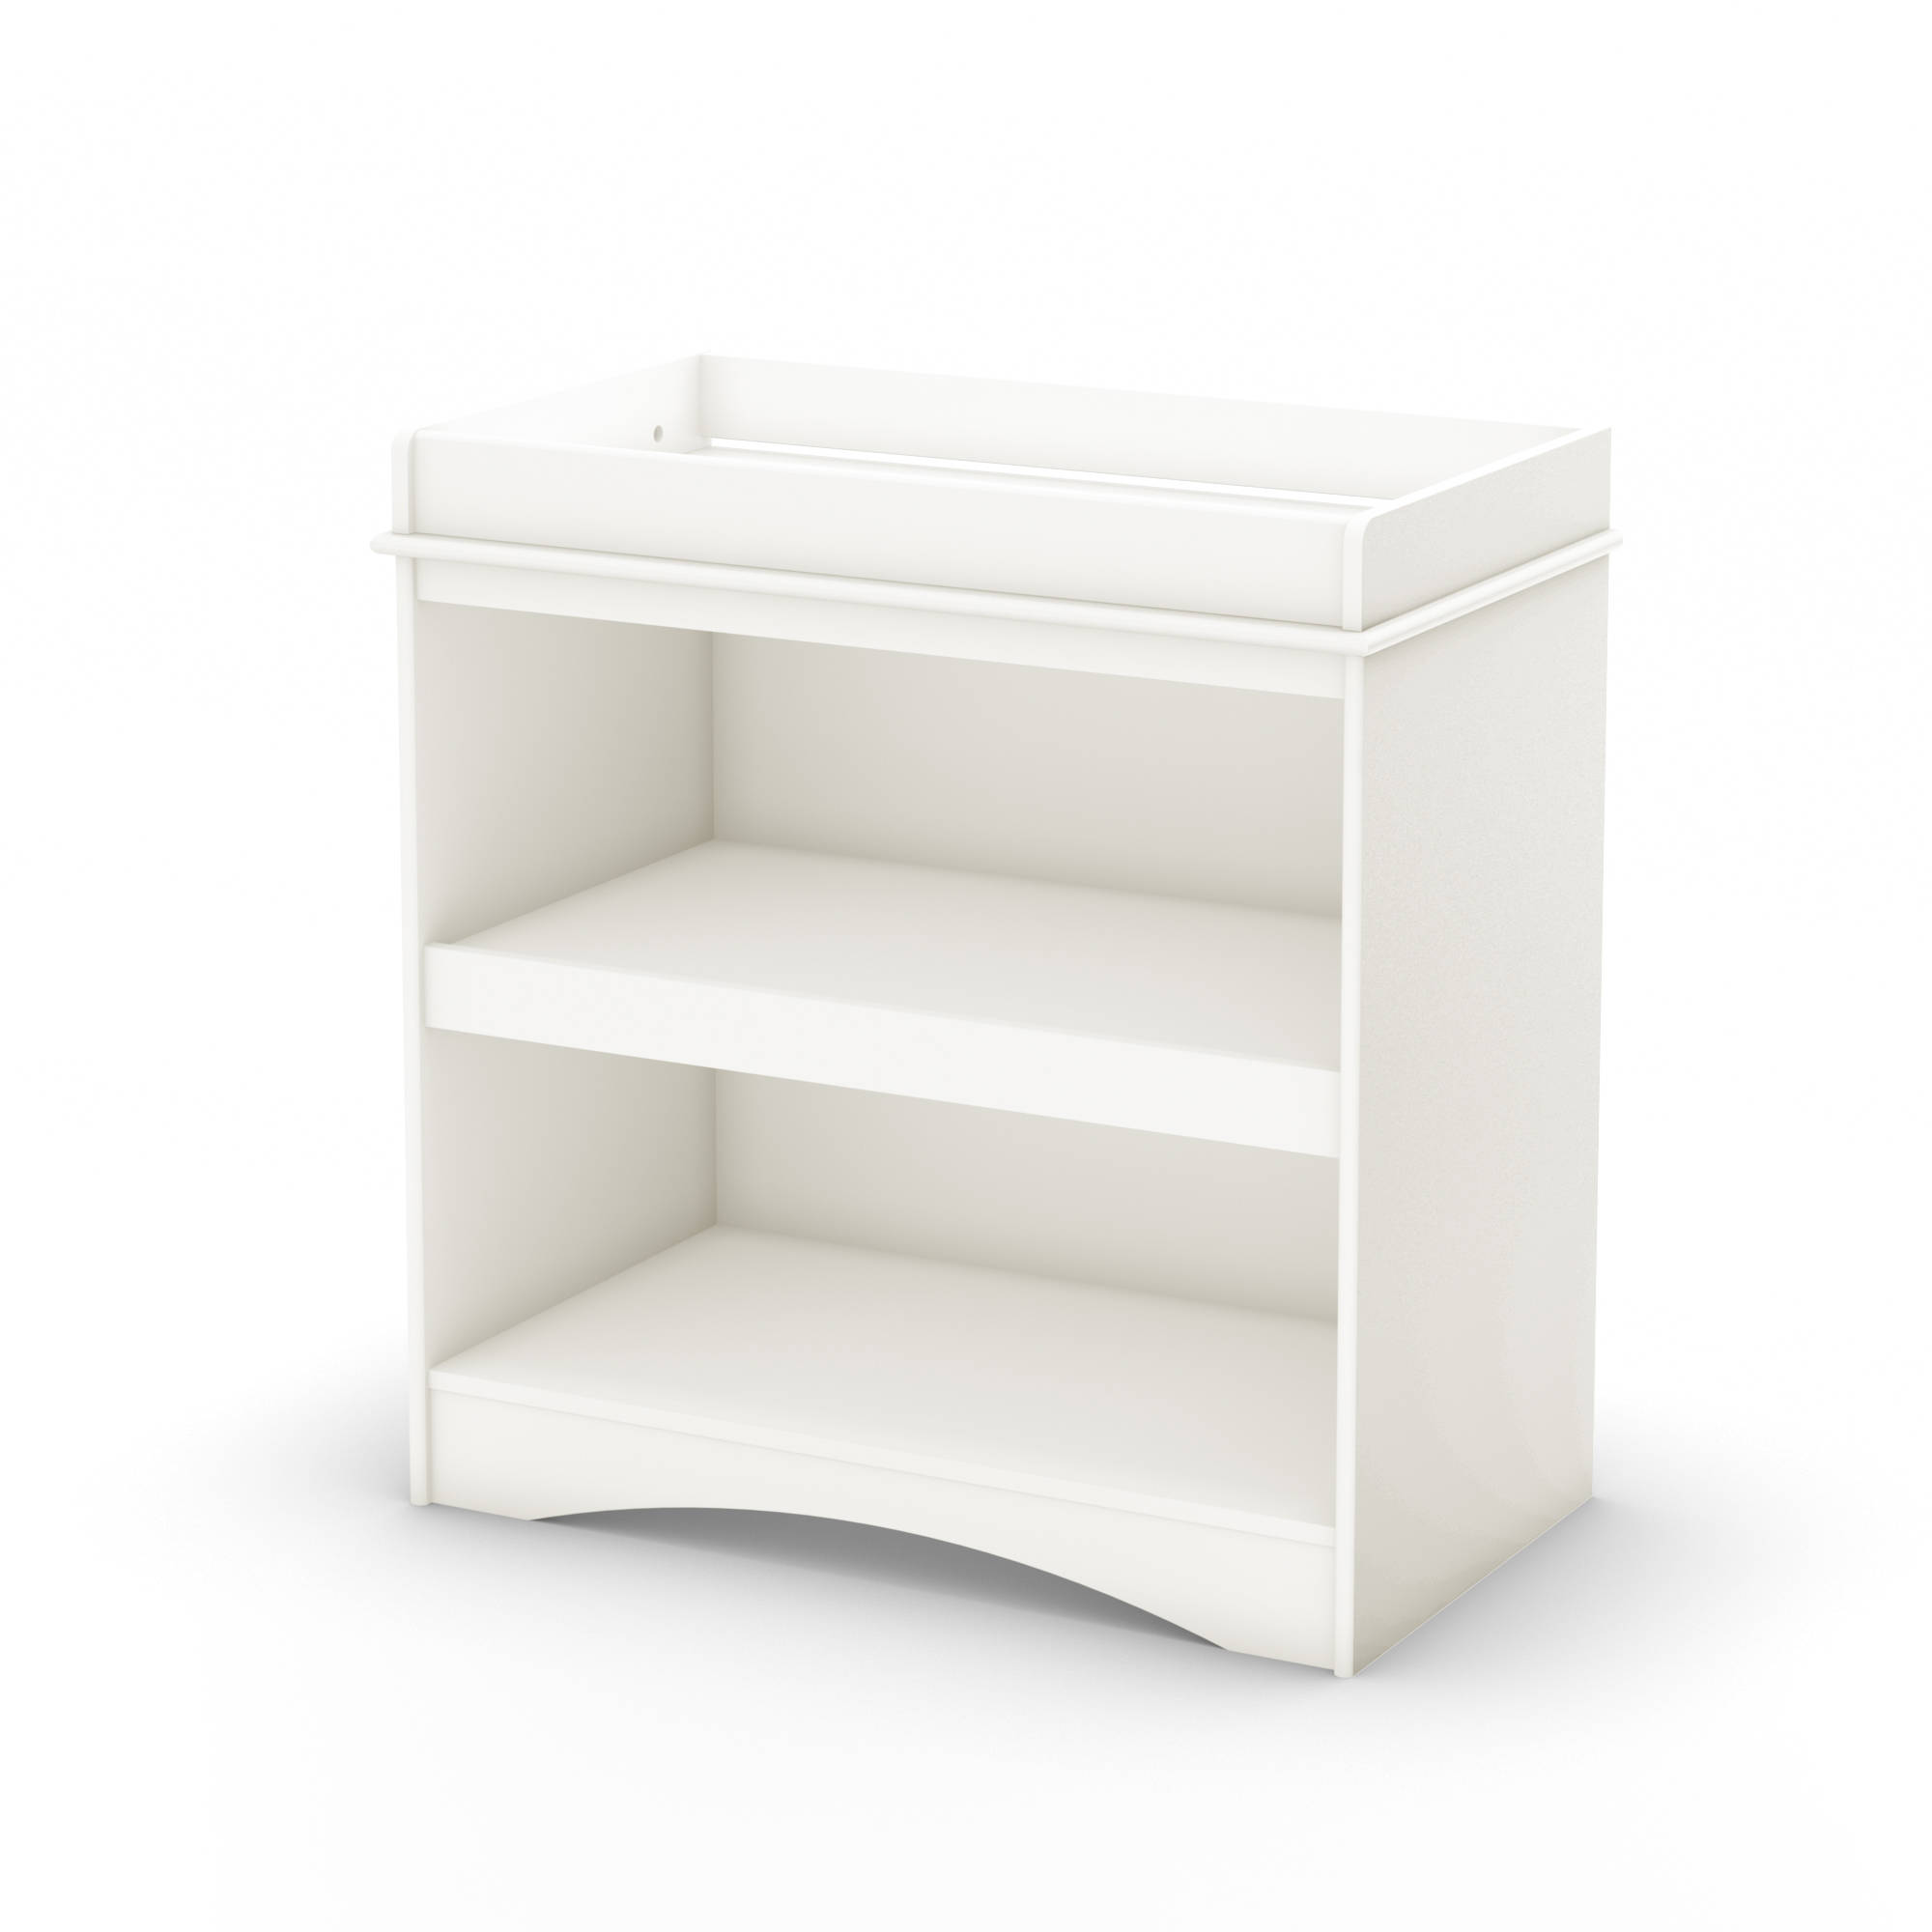 Incroyable South Shore Peek A Boo Changing Table, Multiple Finishes